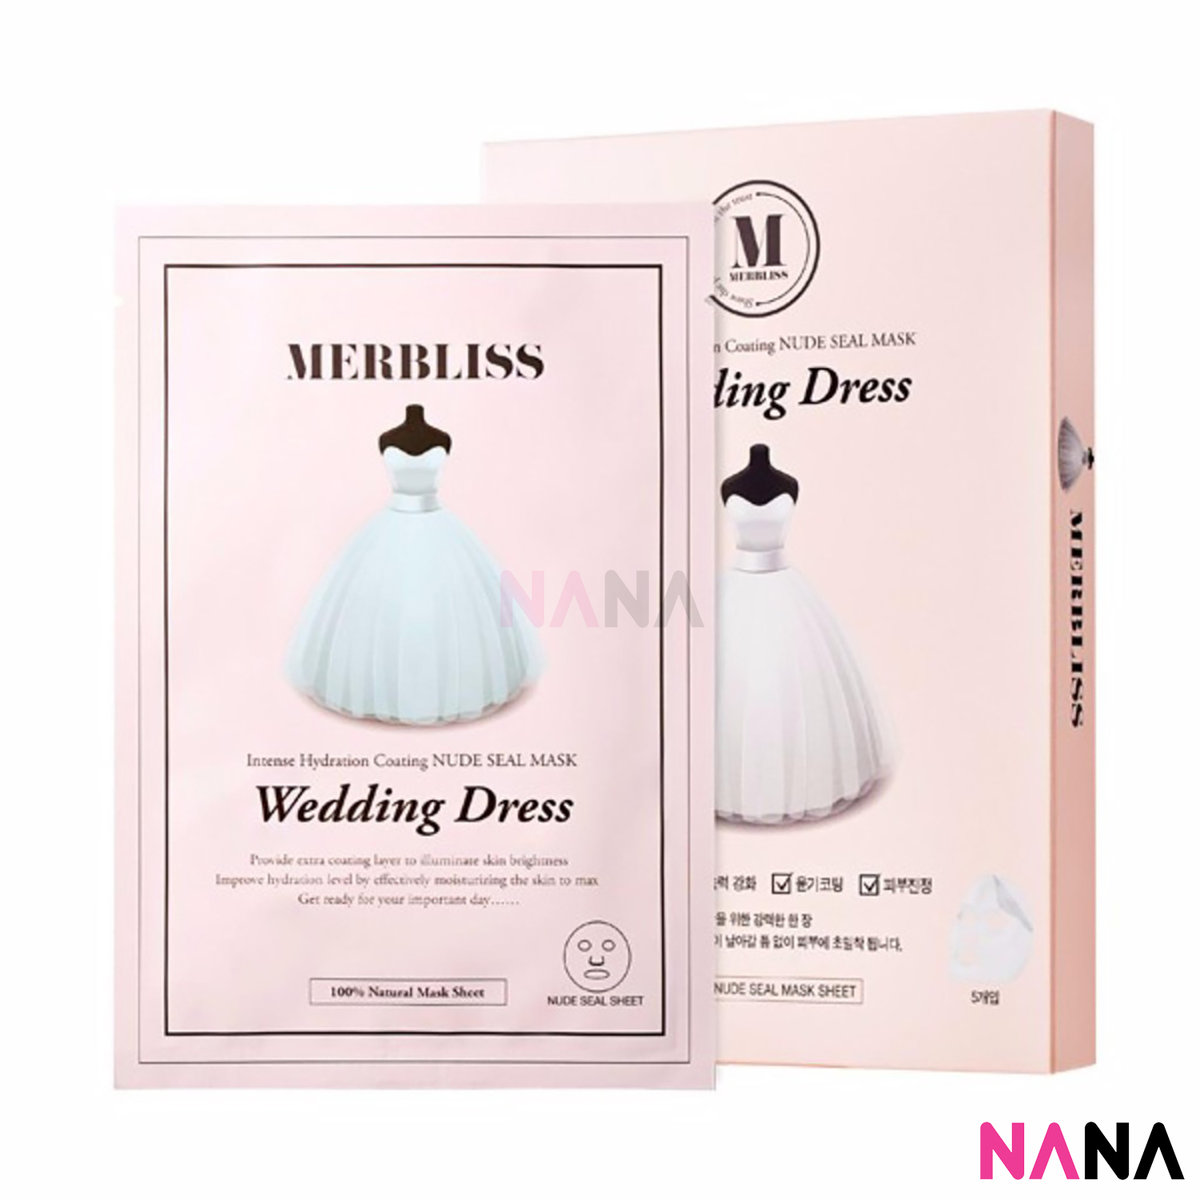 Wedding Dress Intense Hydration Coating Nude Seal Mask (5 Sheets)